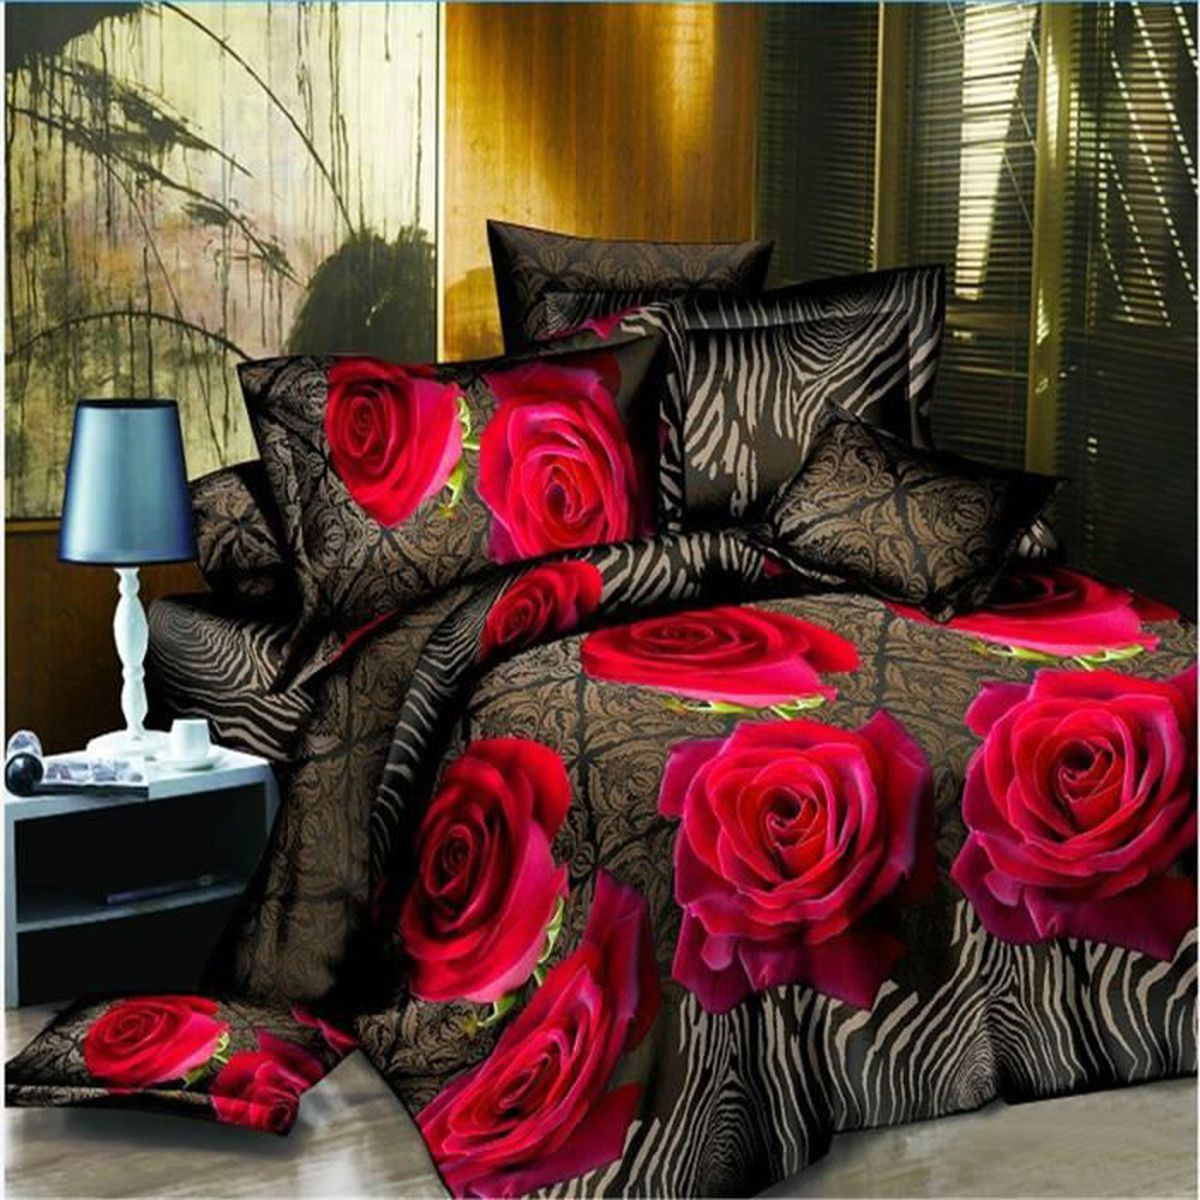 parure de couette rose noir achat vente parure de. Black Bedroom Furniture Sets. Home Design Ideas